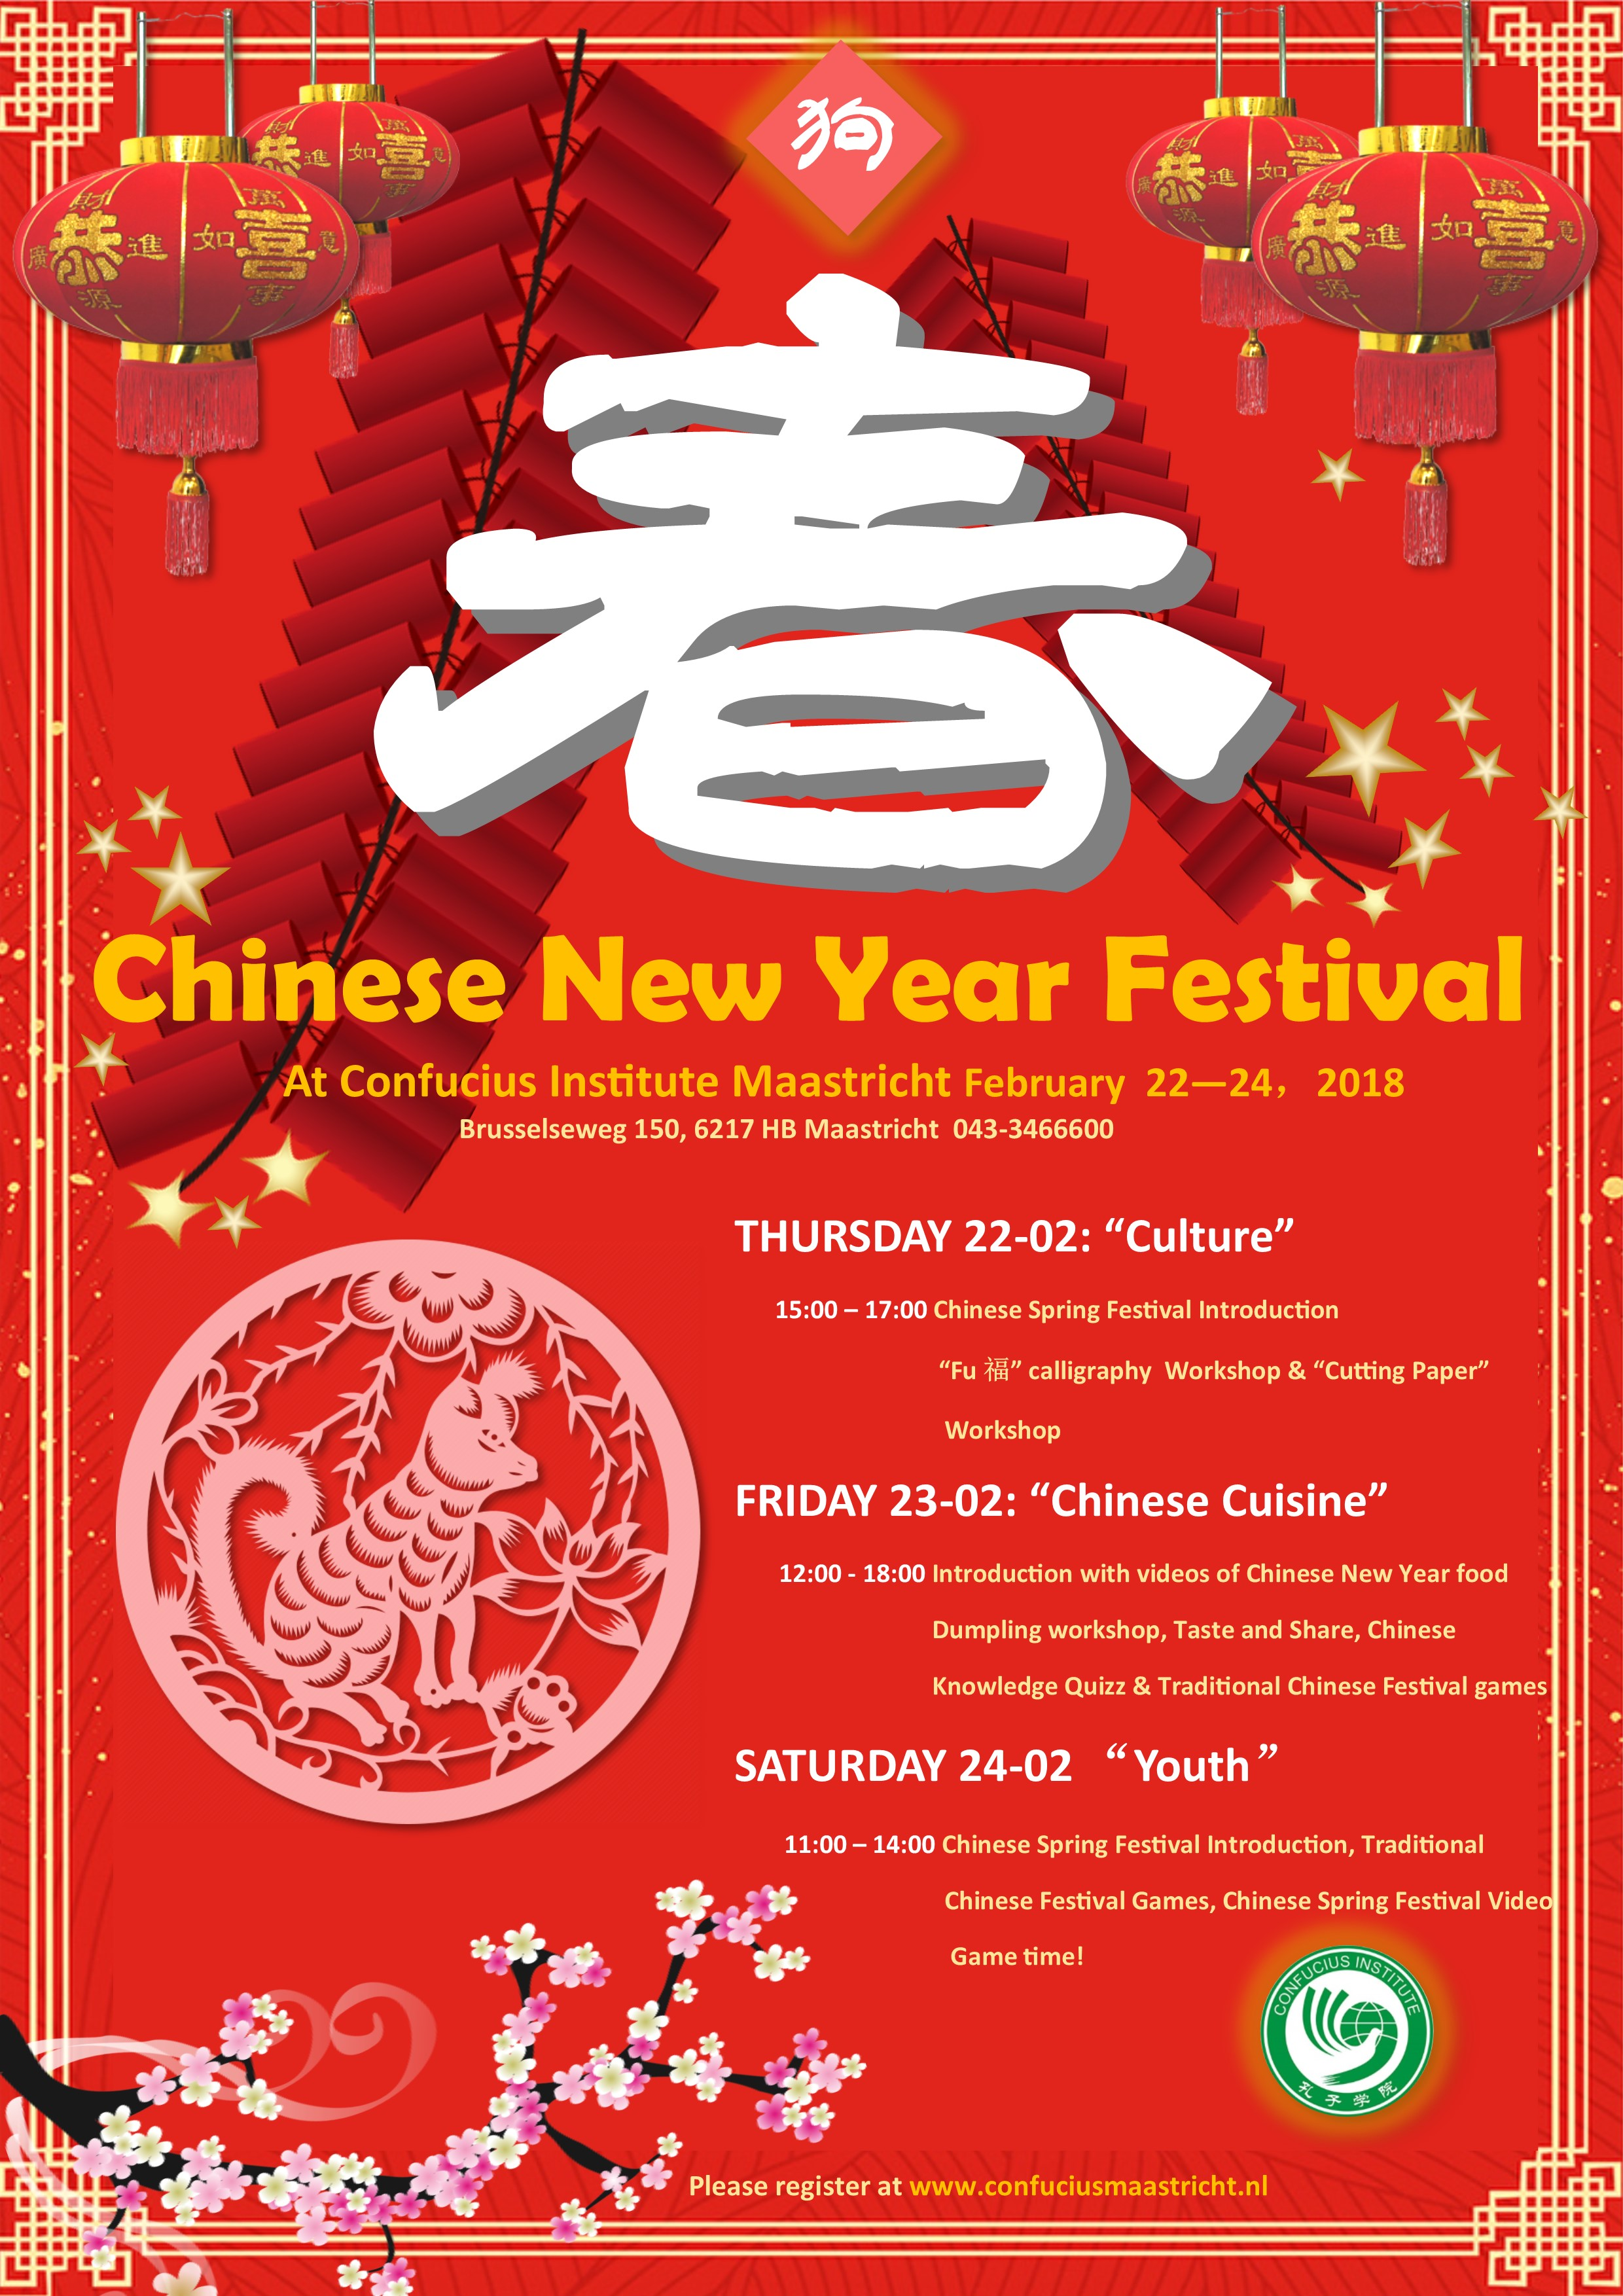 Chinese Spring Festival 2018 at the Confucius Institute Maastricht